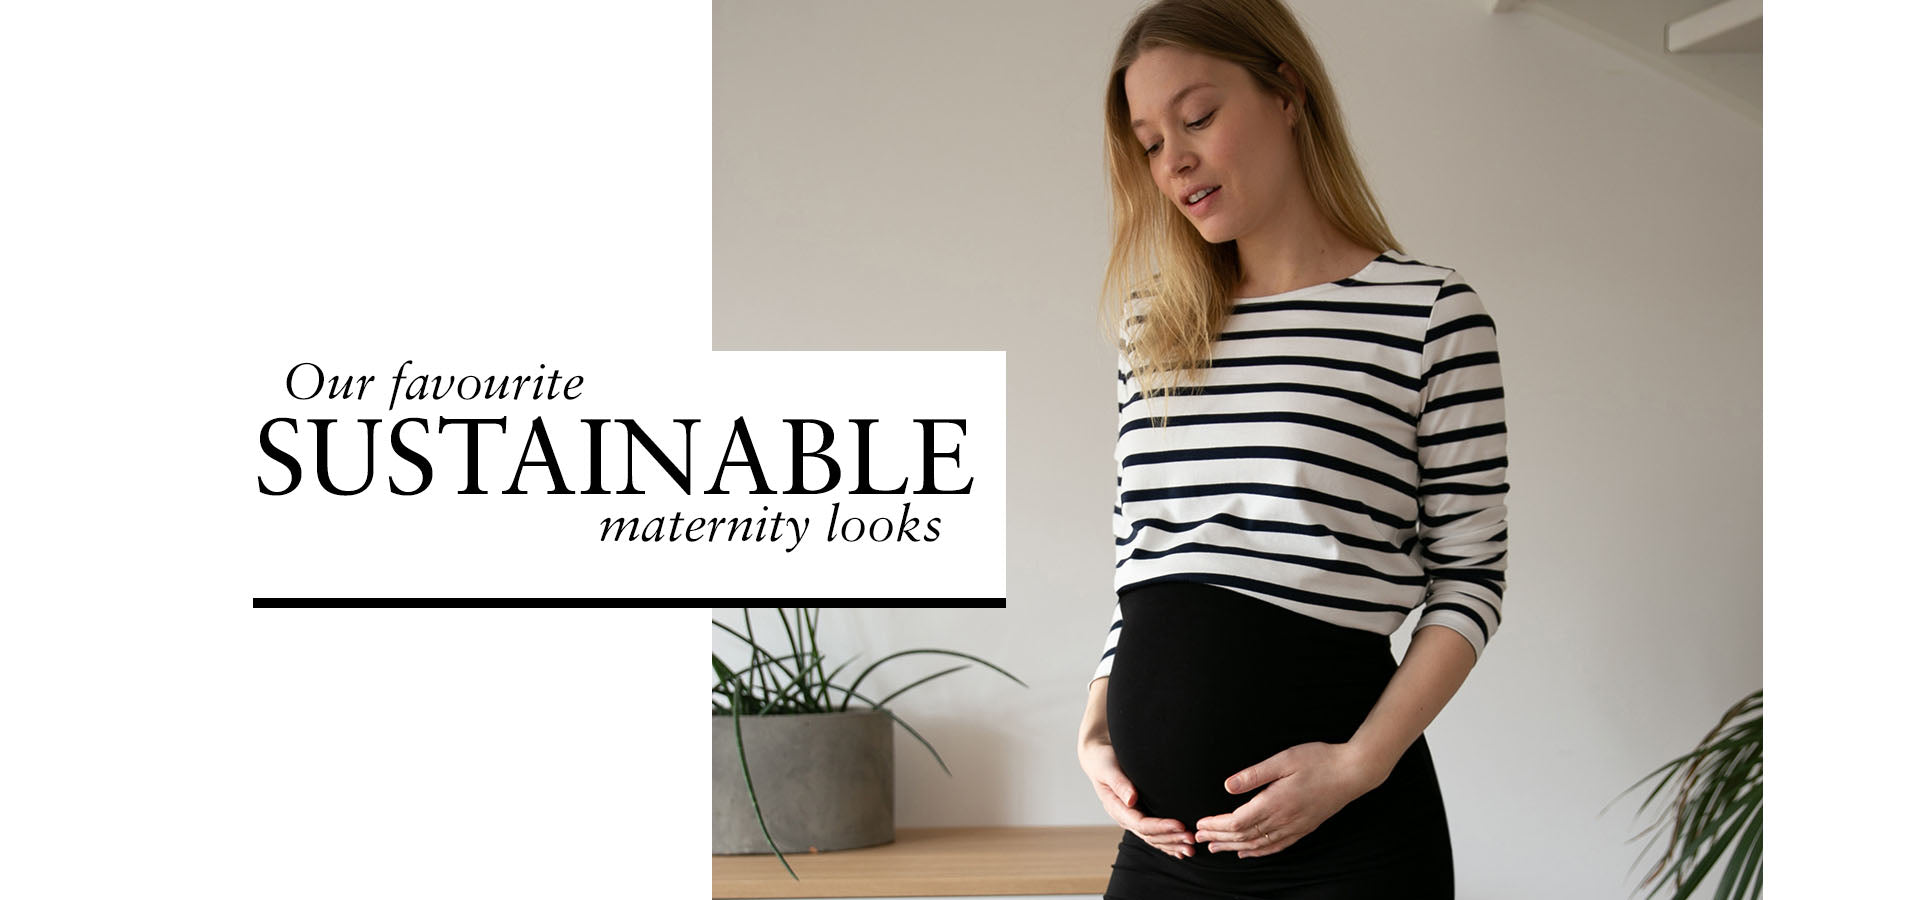 Our favourite sustainable maternity looks